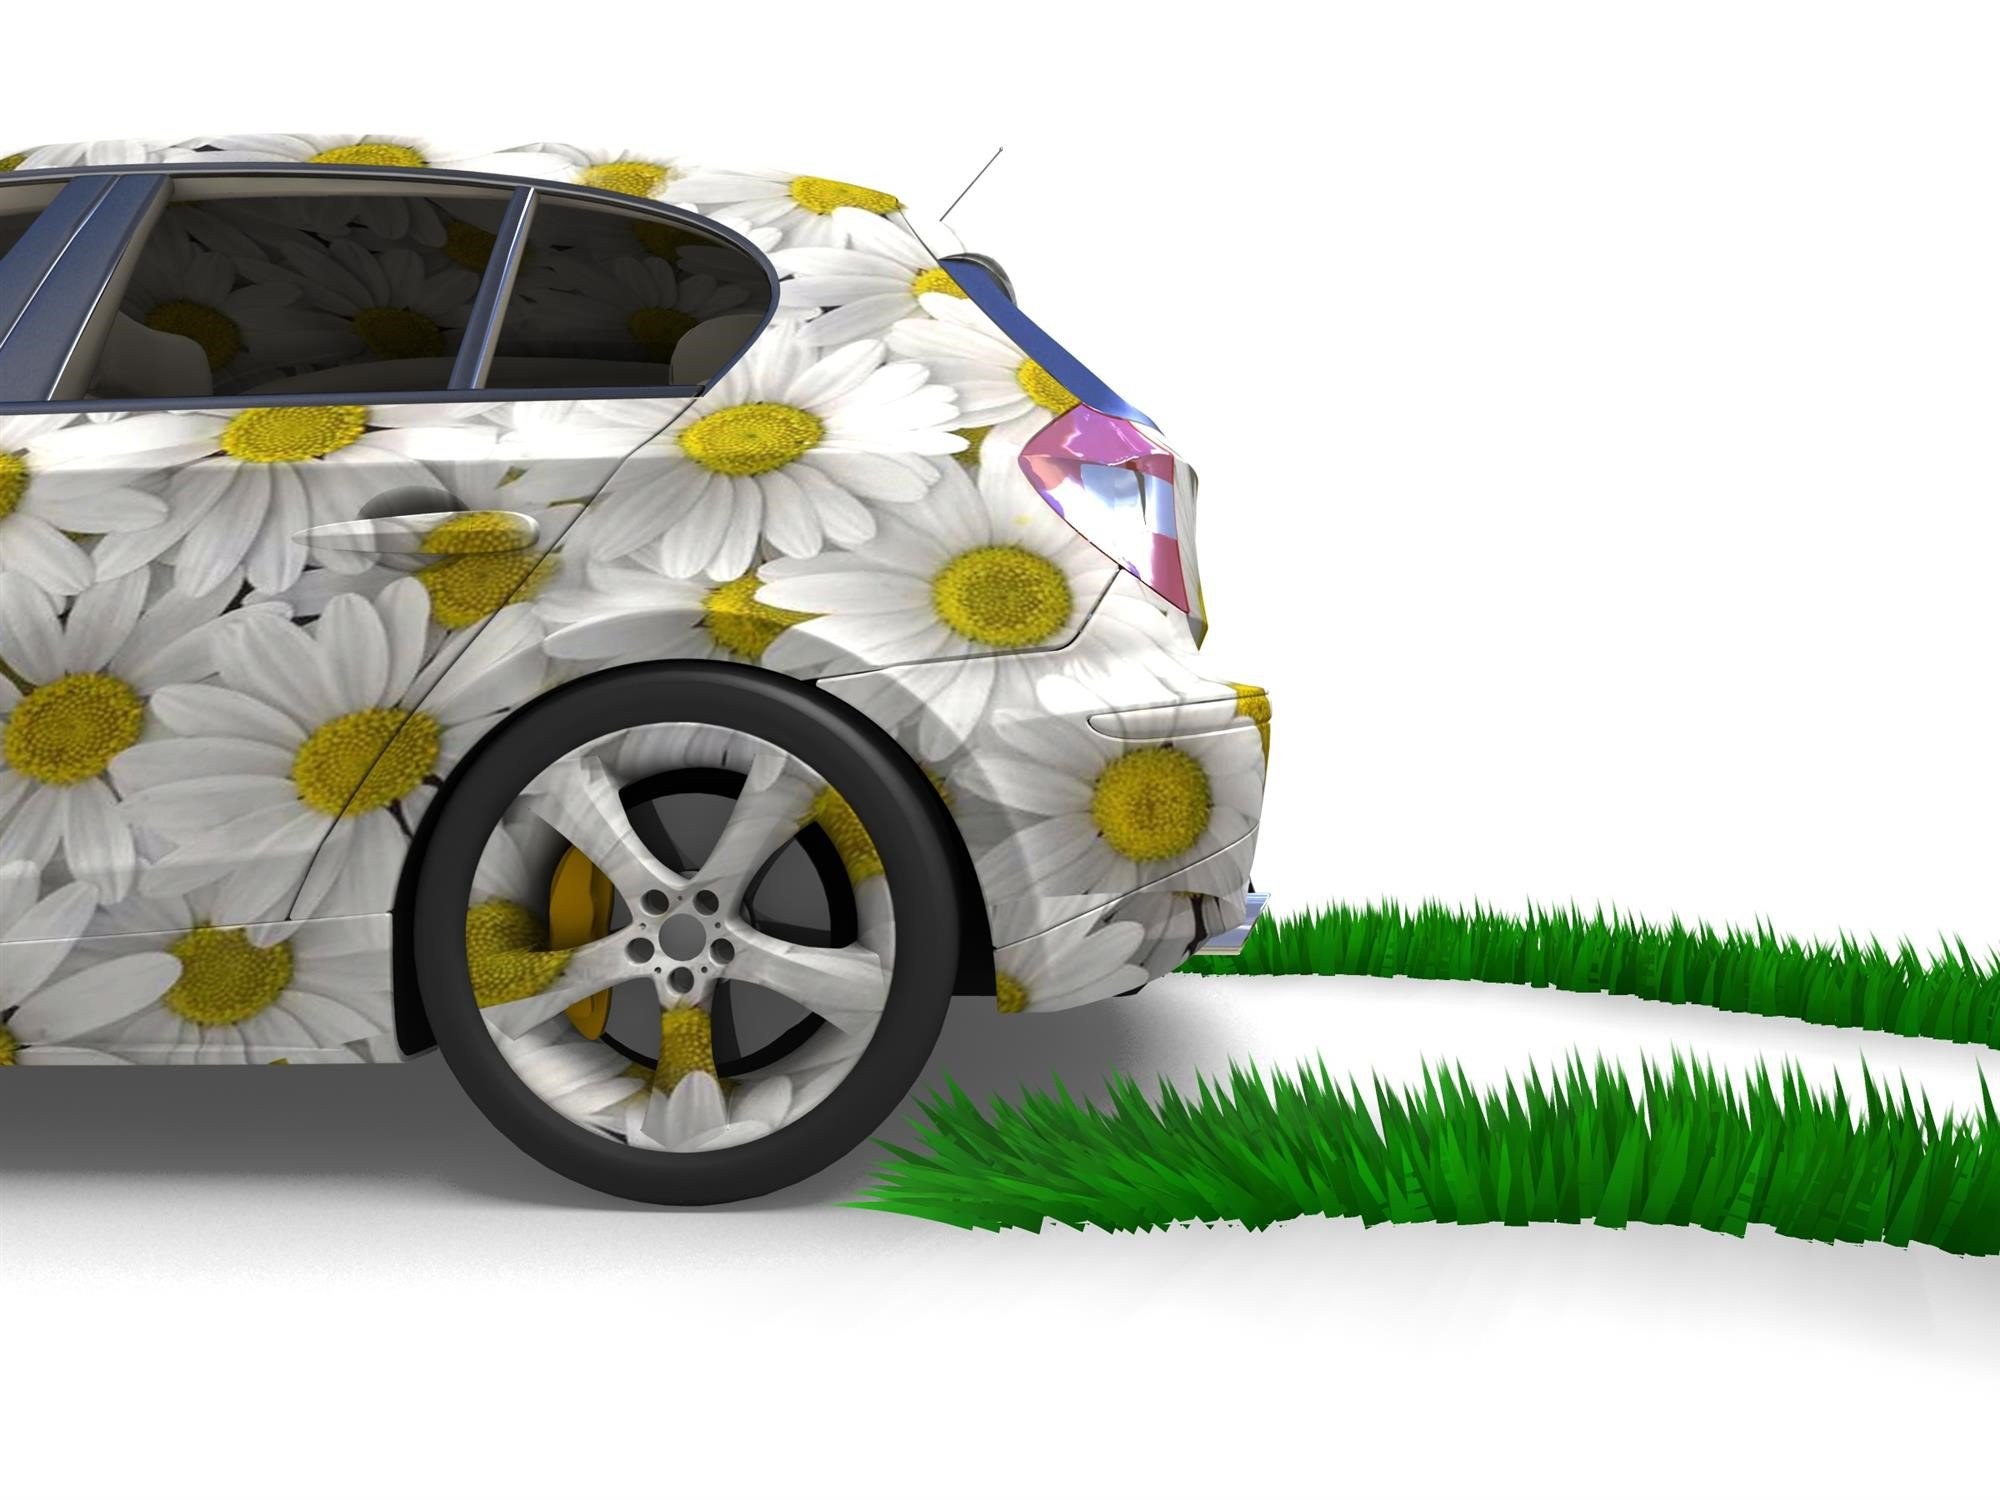 Car with daisies on them